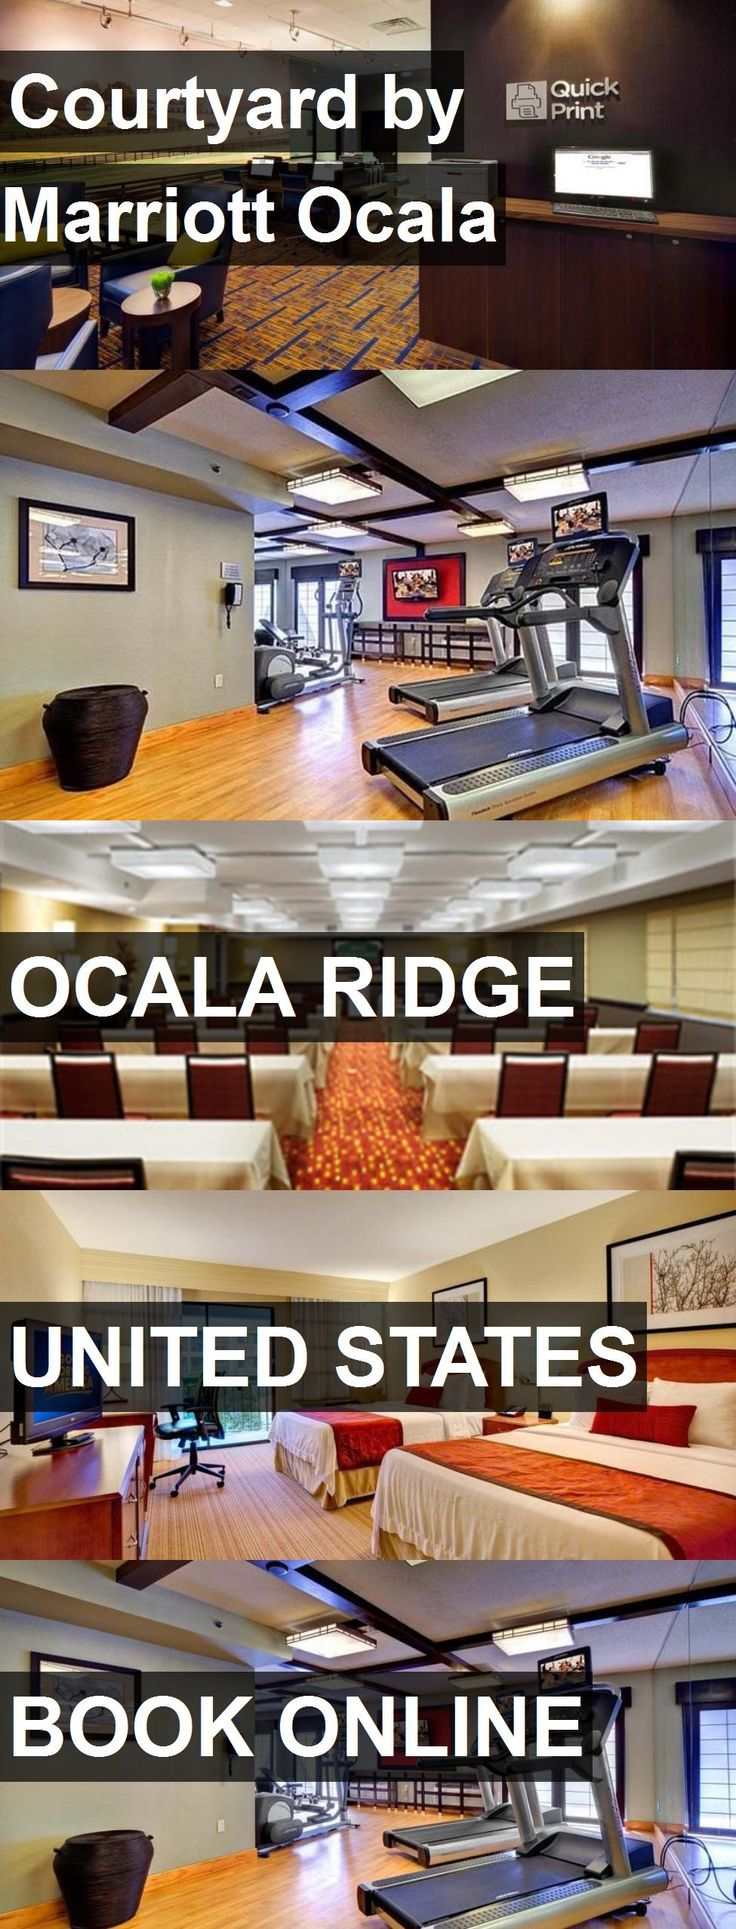 Hotel Courtyard by Marriott Ocala in Ocala Ridge, United States. For more information, photos, reviews and best prices please follow the link. #UnitedStates #OcalaRidge #travel #vacation #hotel